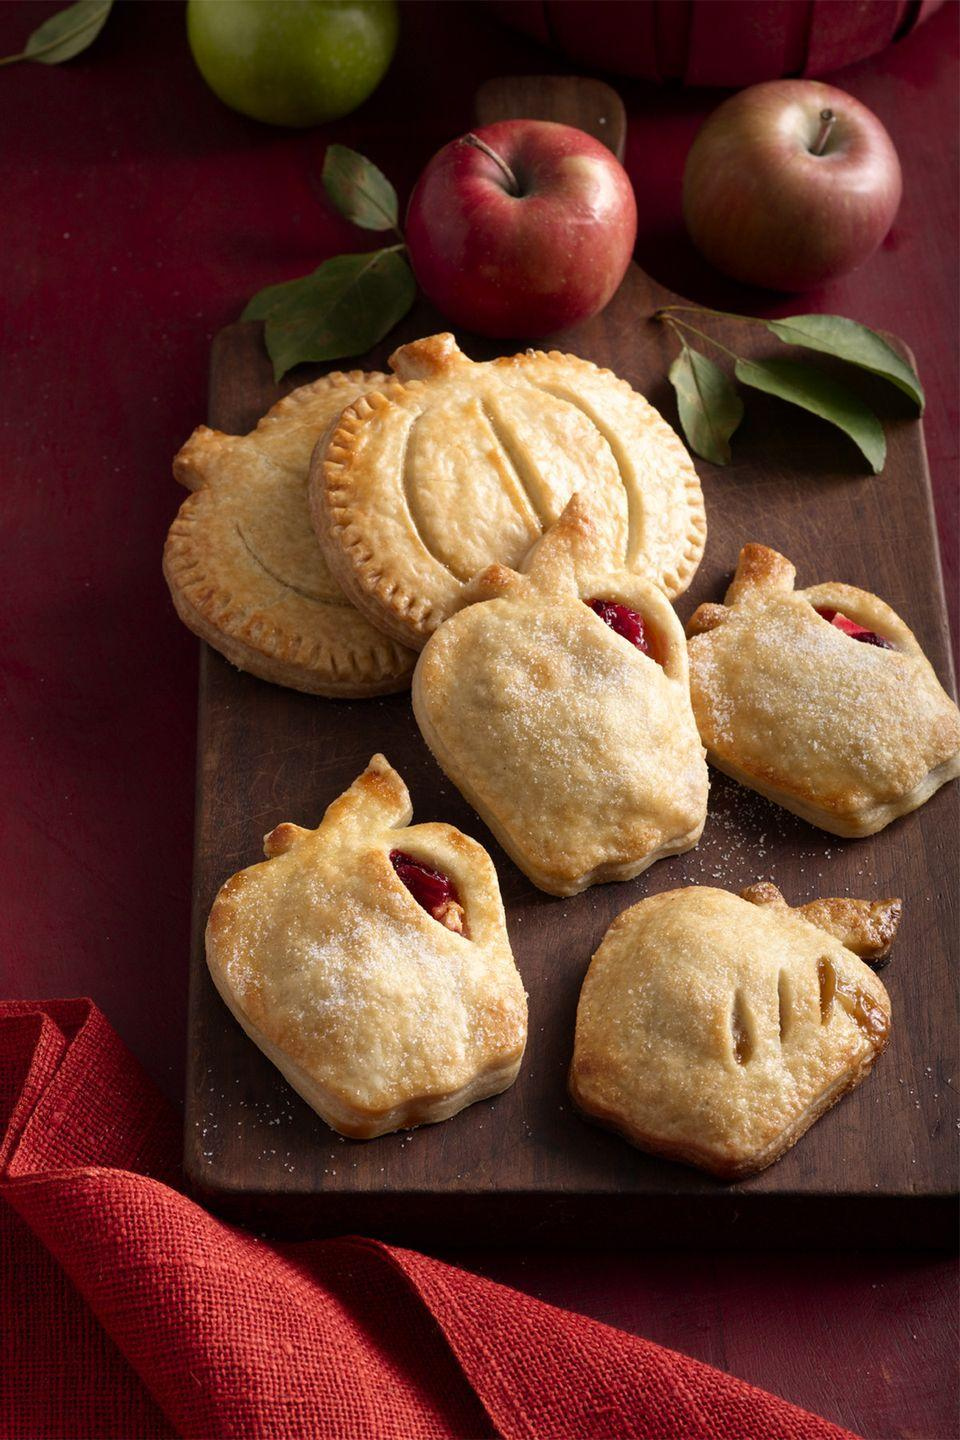 "<p>These mini apple and cranberry pies are sure to put a smile on everyone's face this season.</p><p><strong><em><a href=""https://www.womansday.com/food-recipes/food-drinks/recipes/a60186/apple-cranberry-hand-pies/"" rel=""nofollow noopener"" target=""_blank"" data-ylk=""slk:Get the Apple and Cranberry Hand Pies recipe."" class=""link rapid-noclick-resp"">Get the Apple and Cranberry Hand Pies recipe. </a></em></strong></p>"